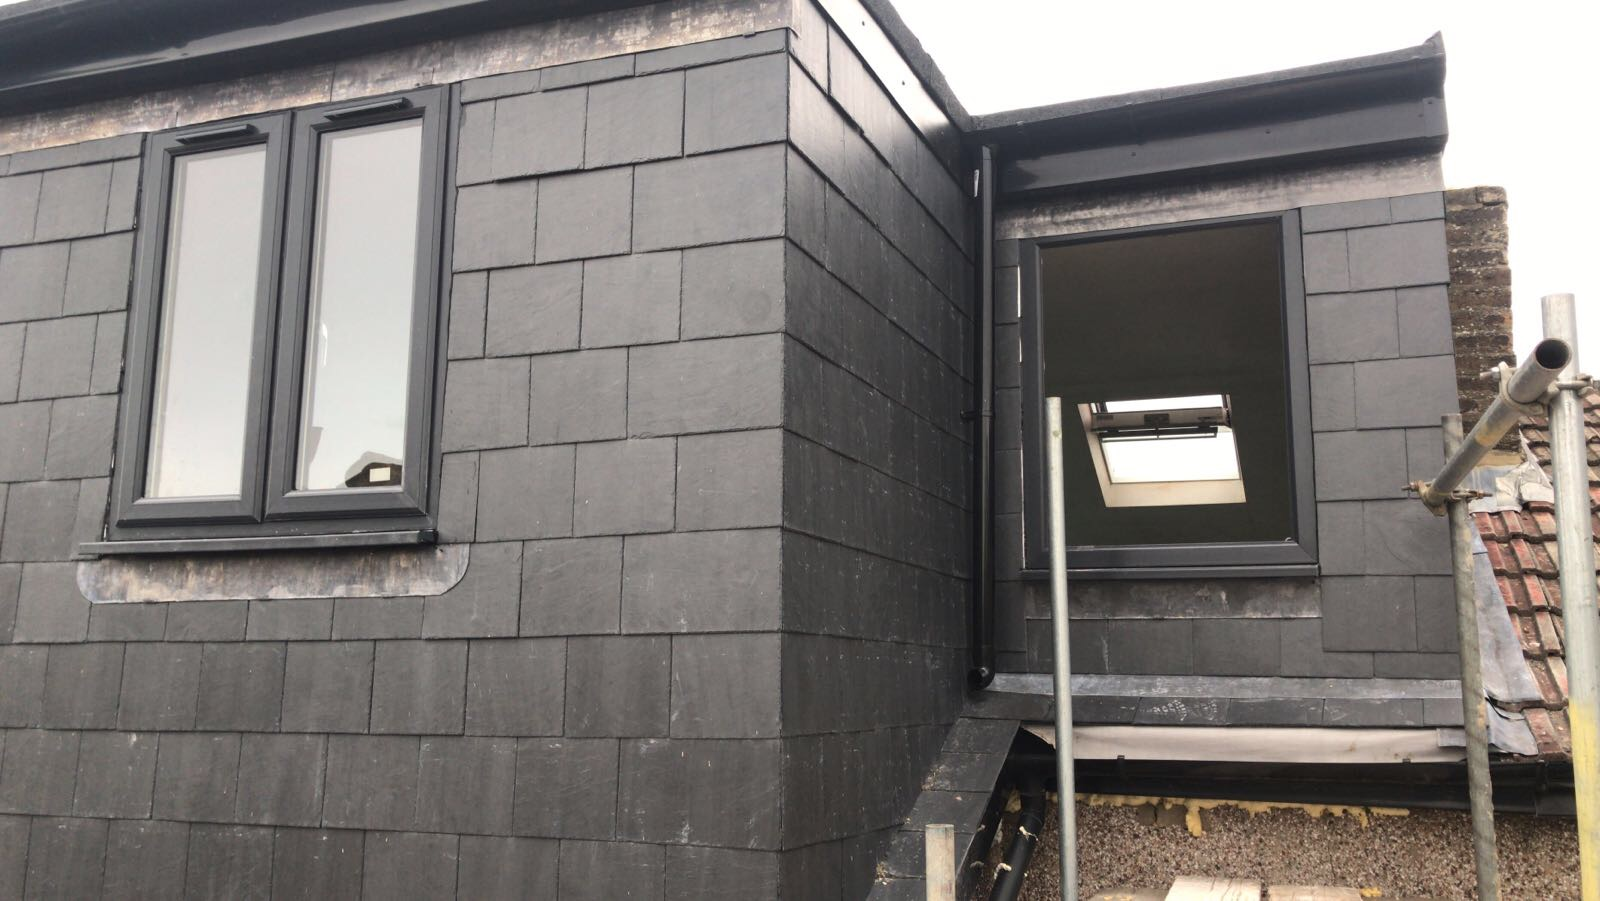 Grey windows - To match the tiles on the new roof and dormer